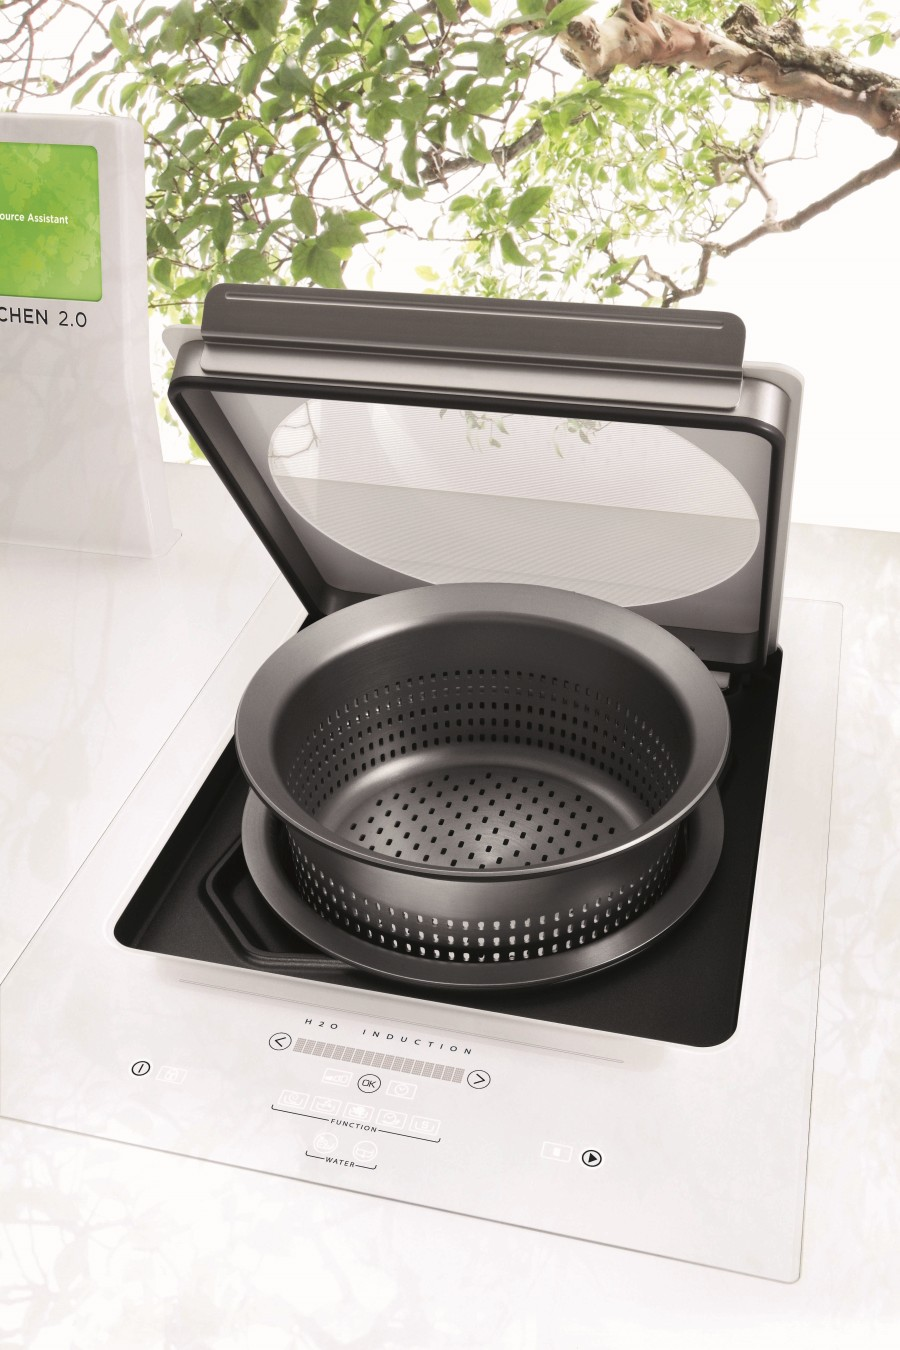 Bauknecht GREENKITCHEN 2.0_H2O Cooking_III Optimum Garer